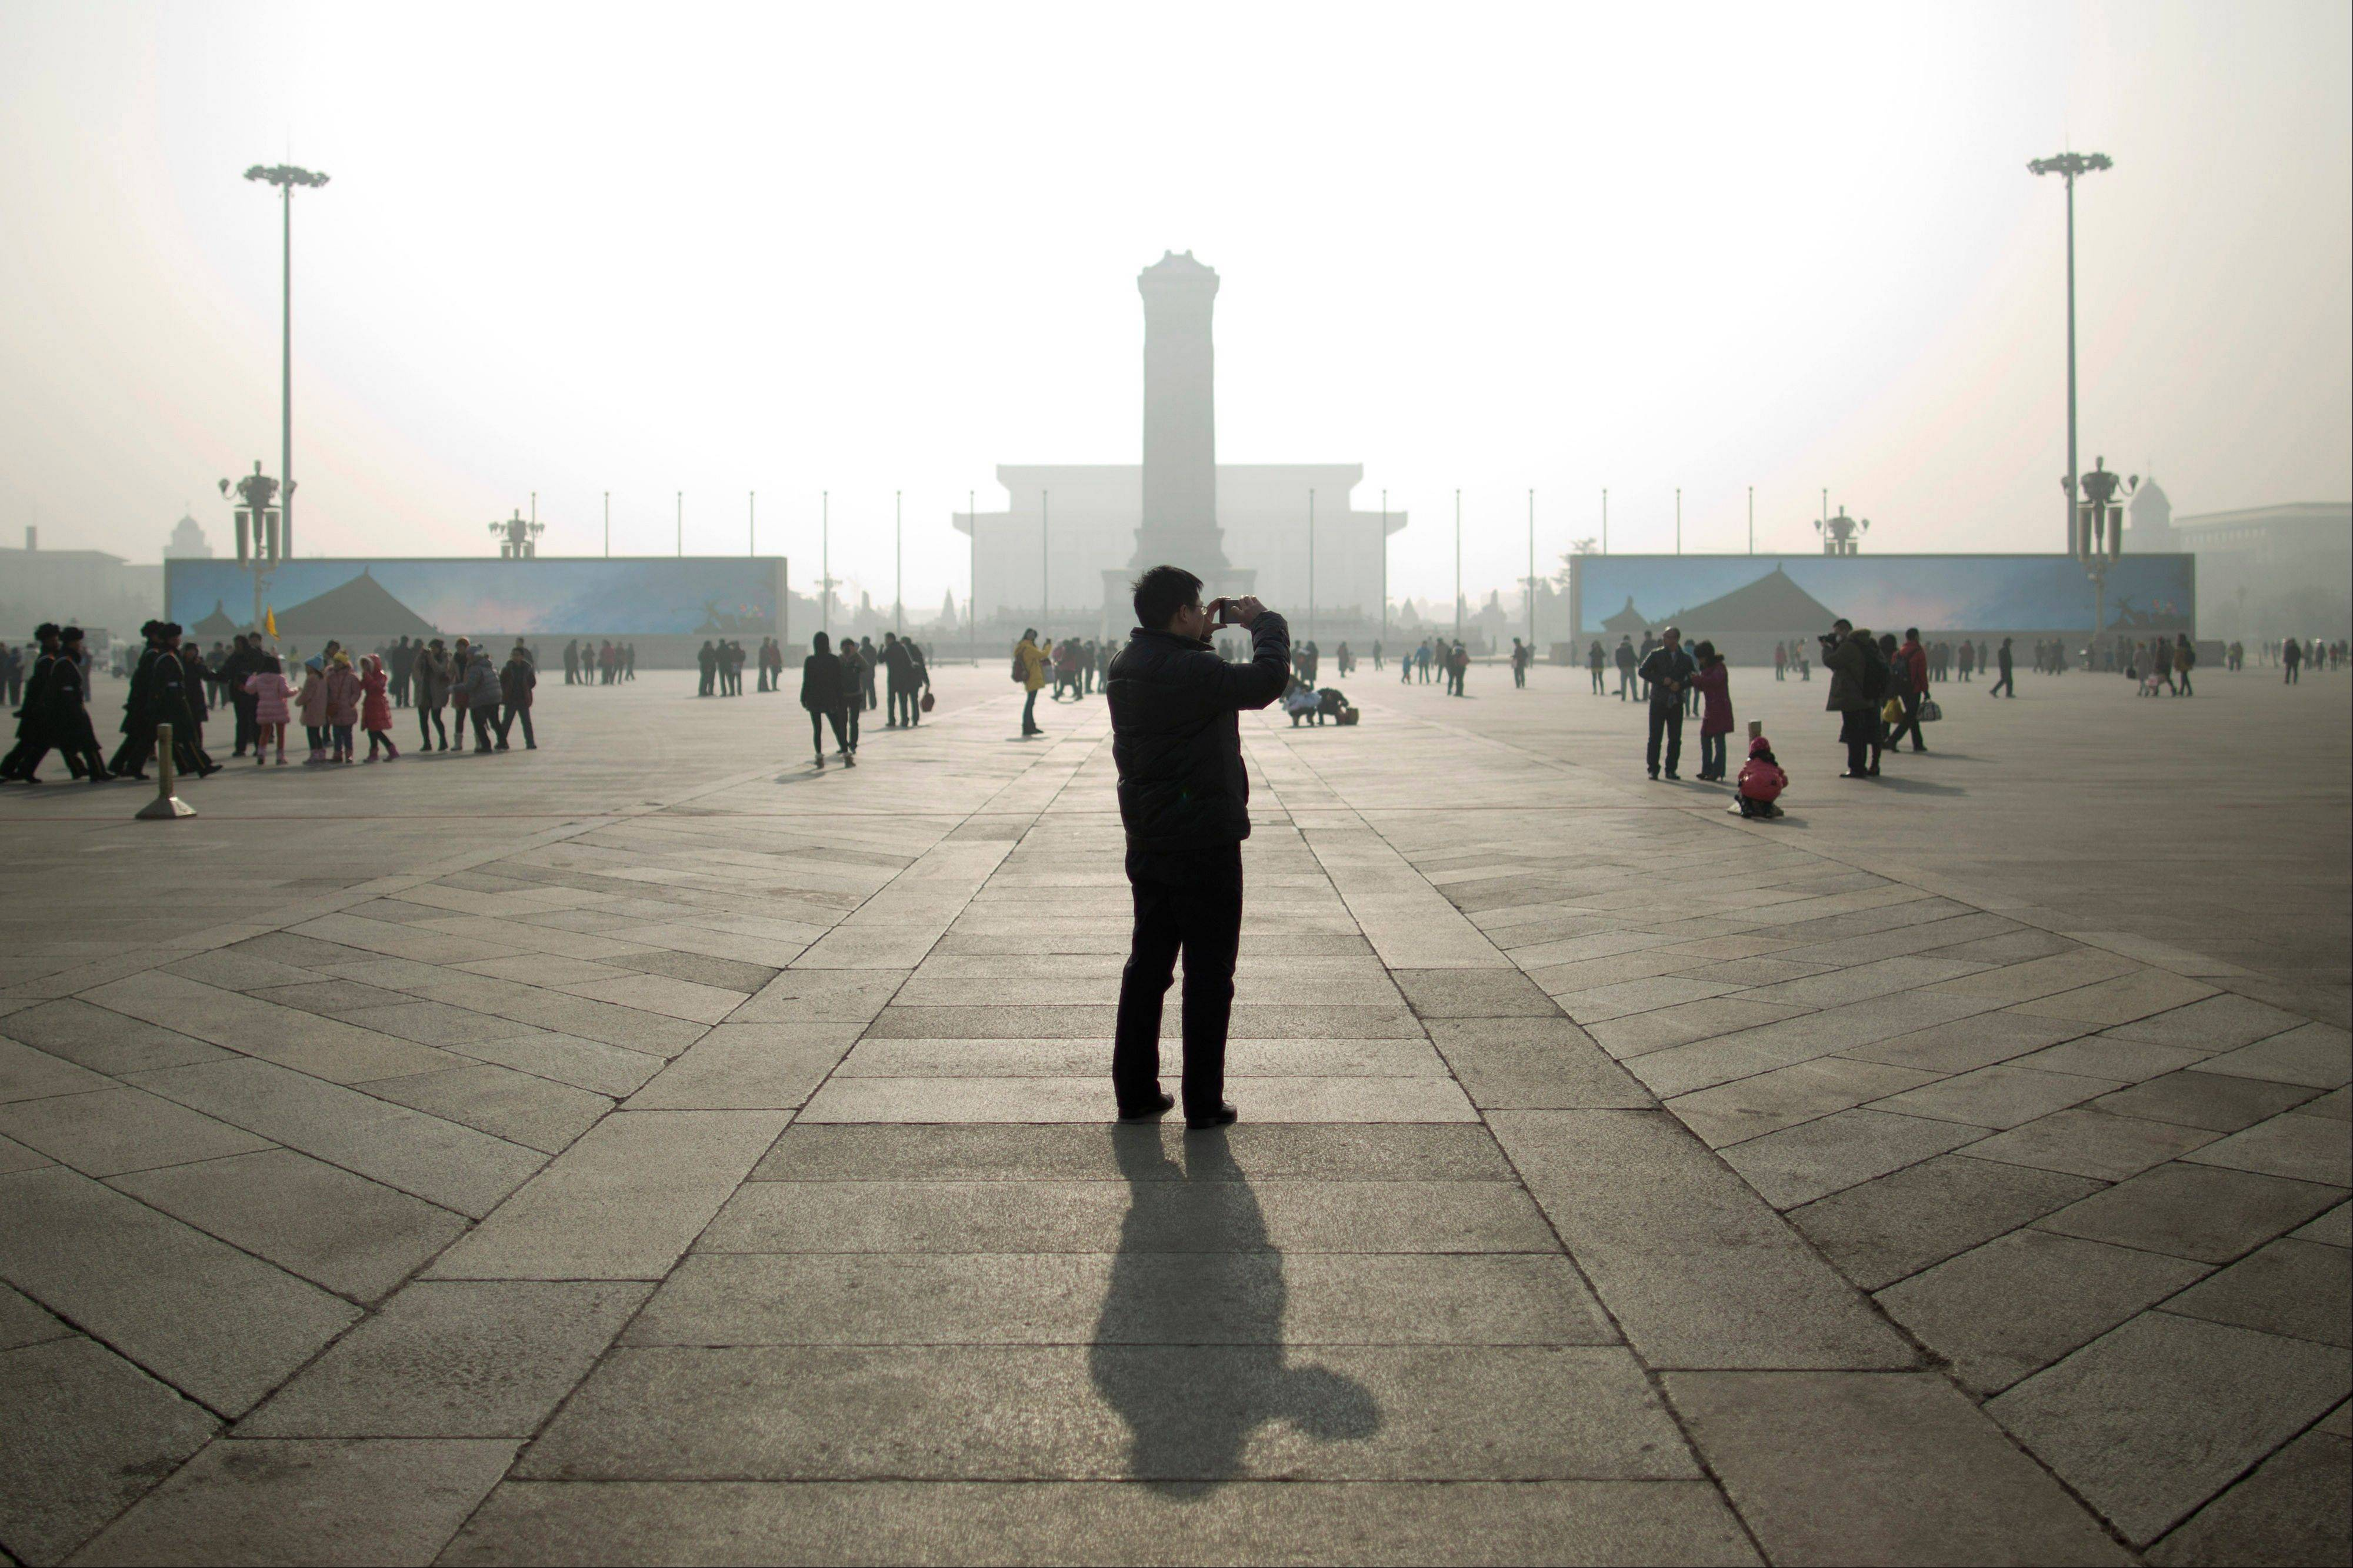 A tourist takes photos during a heavily polluted day on Tiananmen Square in Beijing last week.